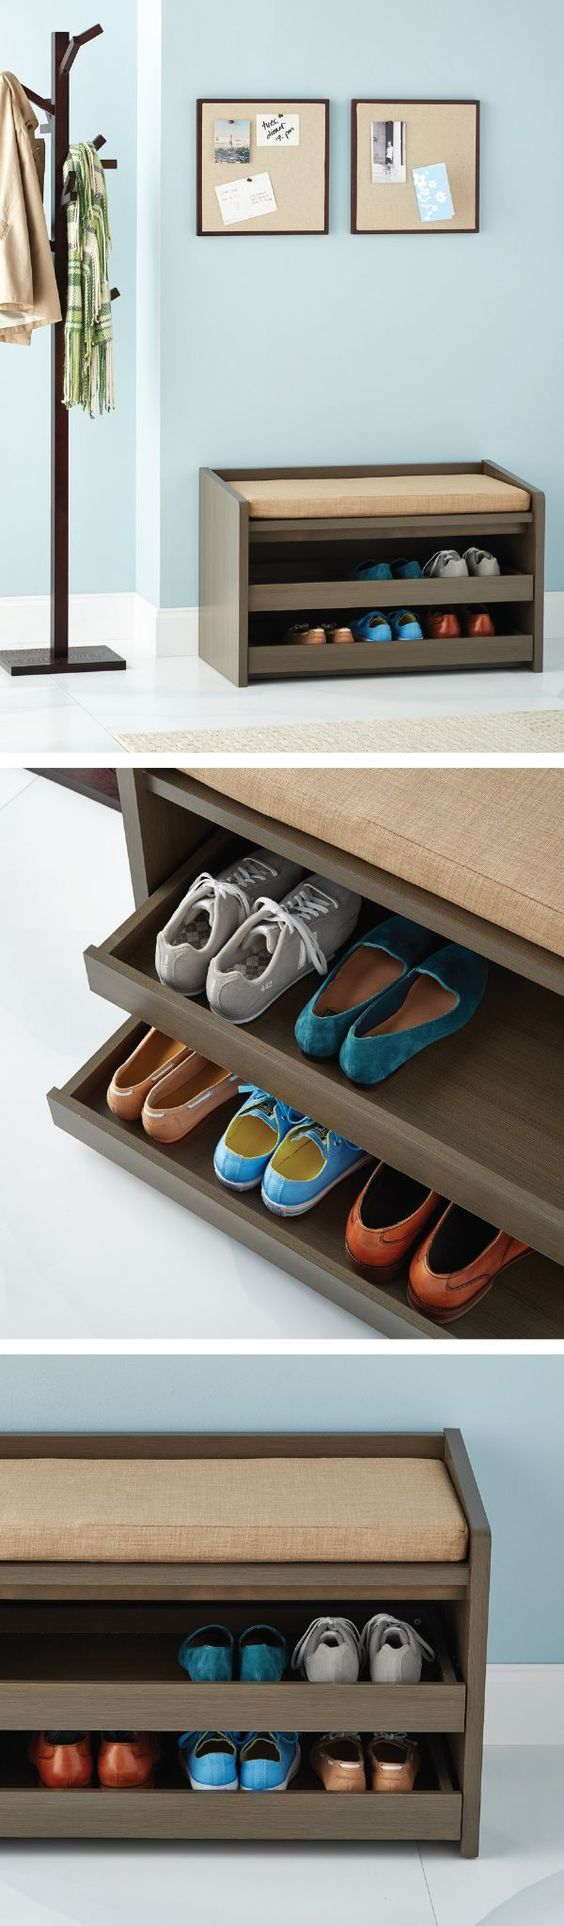 Shoe arrangement can be nuisance especially when